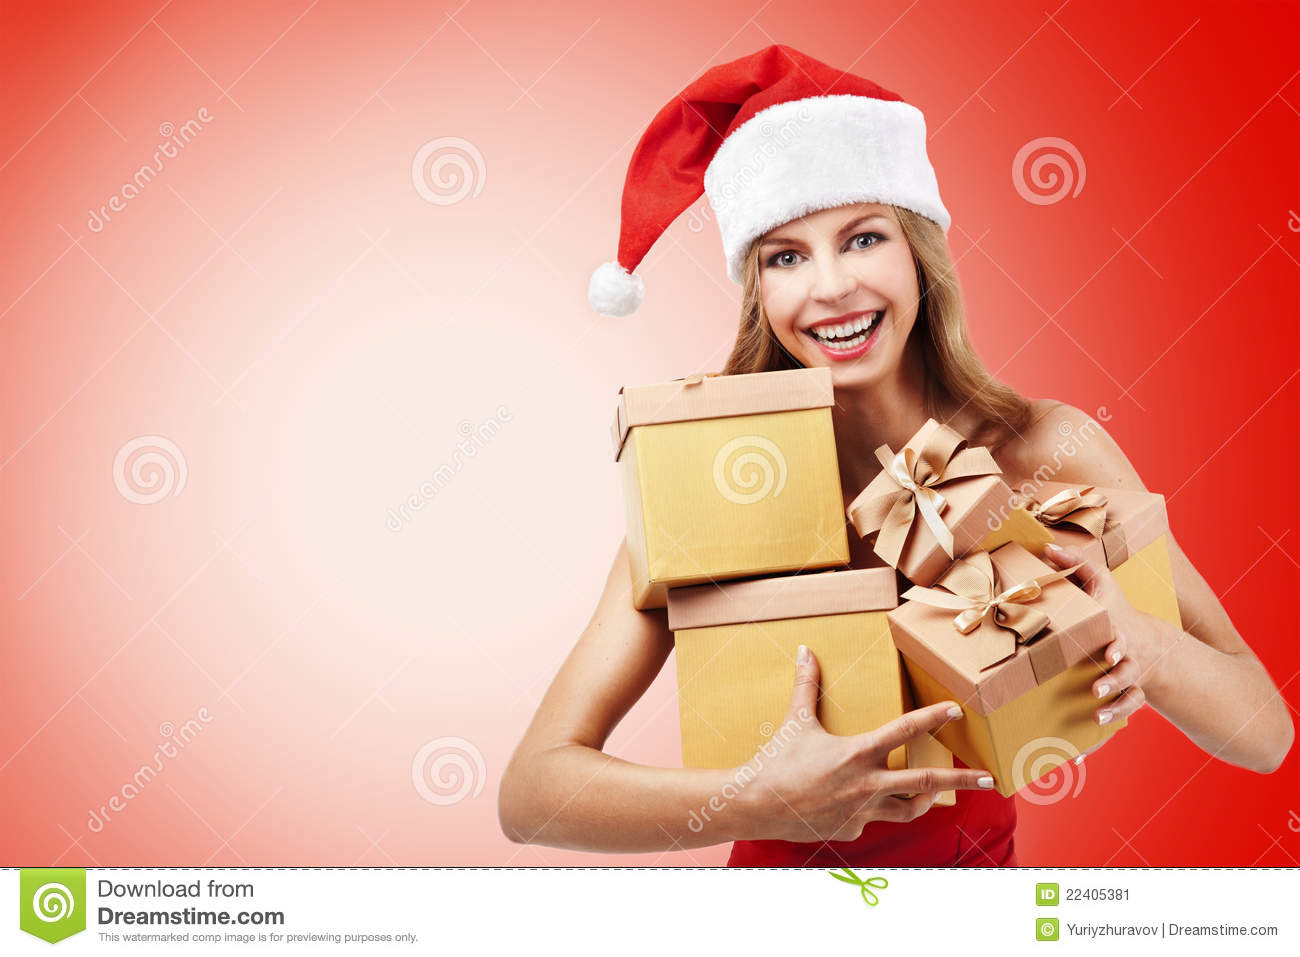 Happy Christmas Woman Holding Gifts Stock Image - Image of girl ...